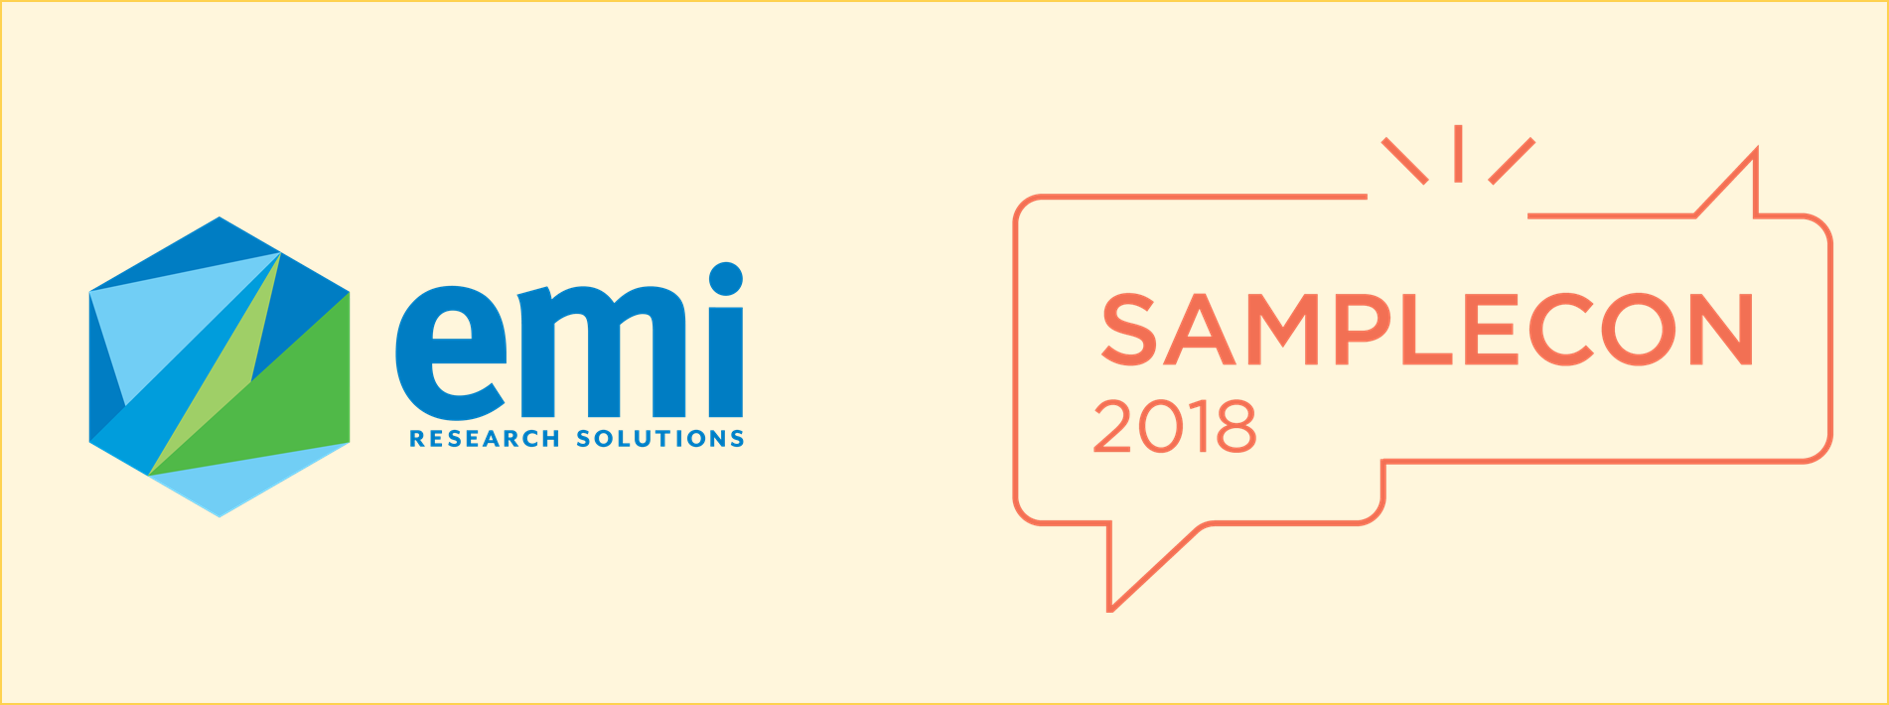 SampleCon 2018: The Top Discussion Topics and Trends From Austin